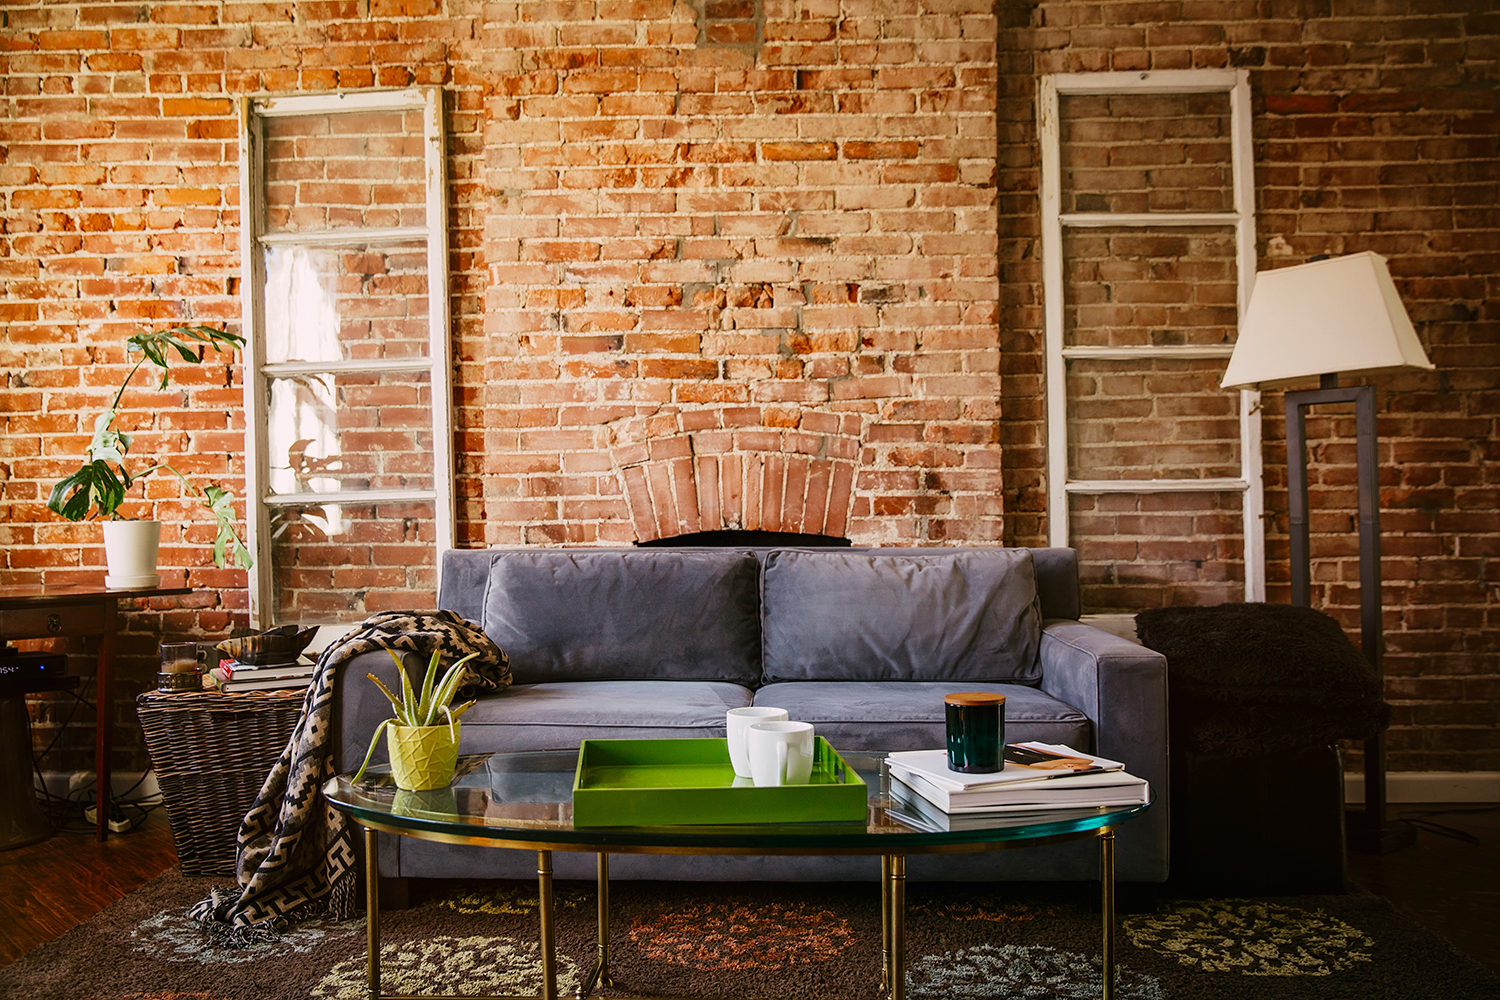 How to Make Your Living Room Sophisticated